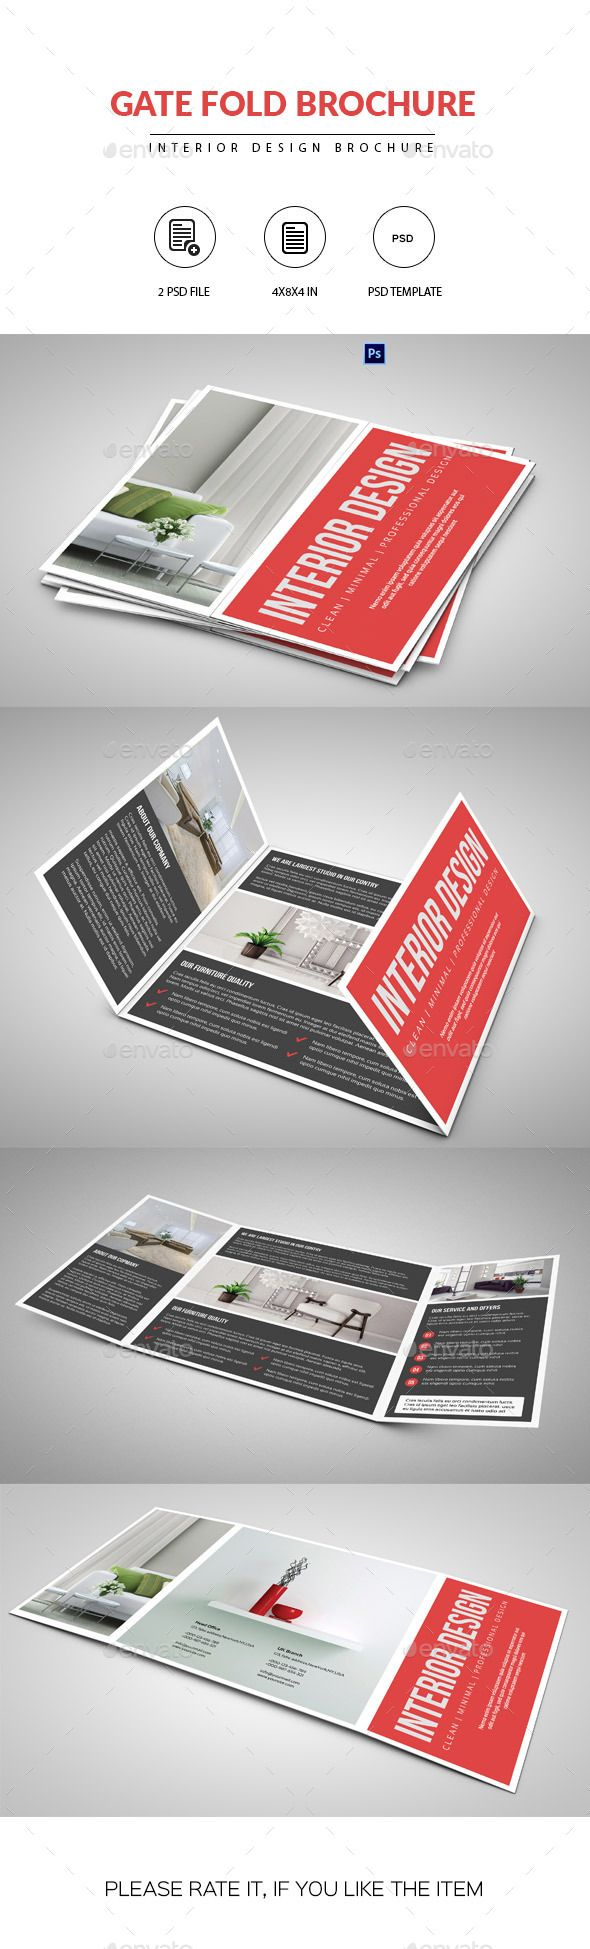 pin by yong yonggg on graphic pinterest brochure design design